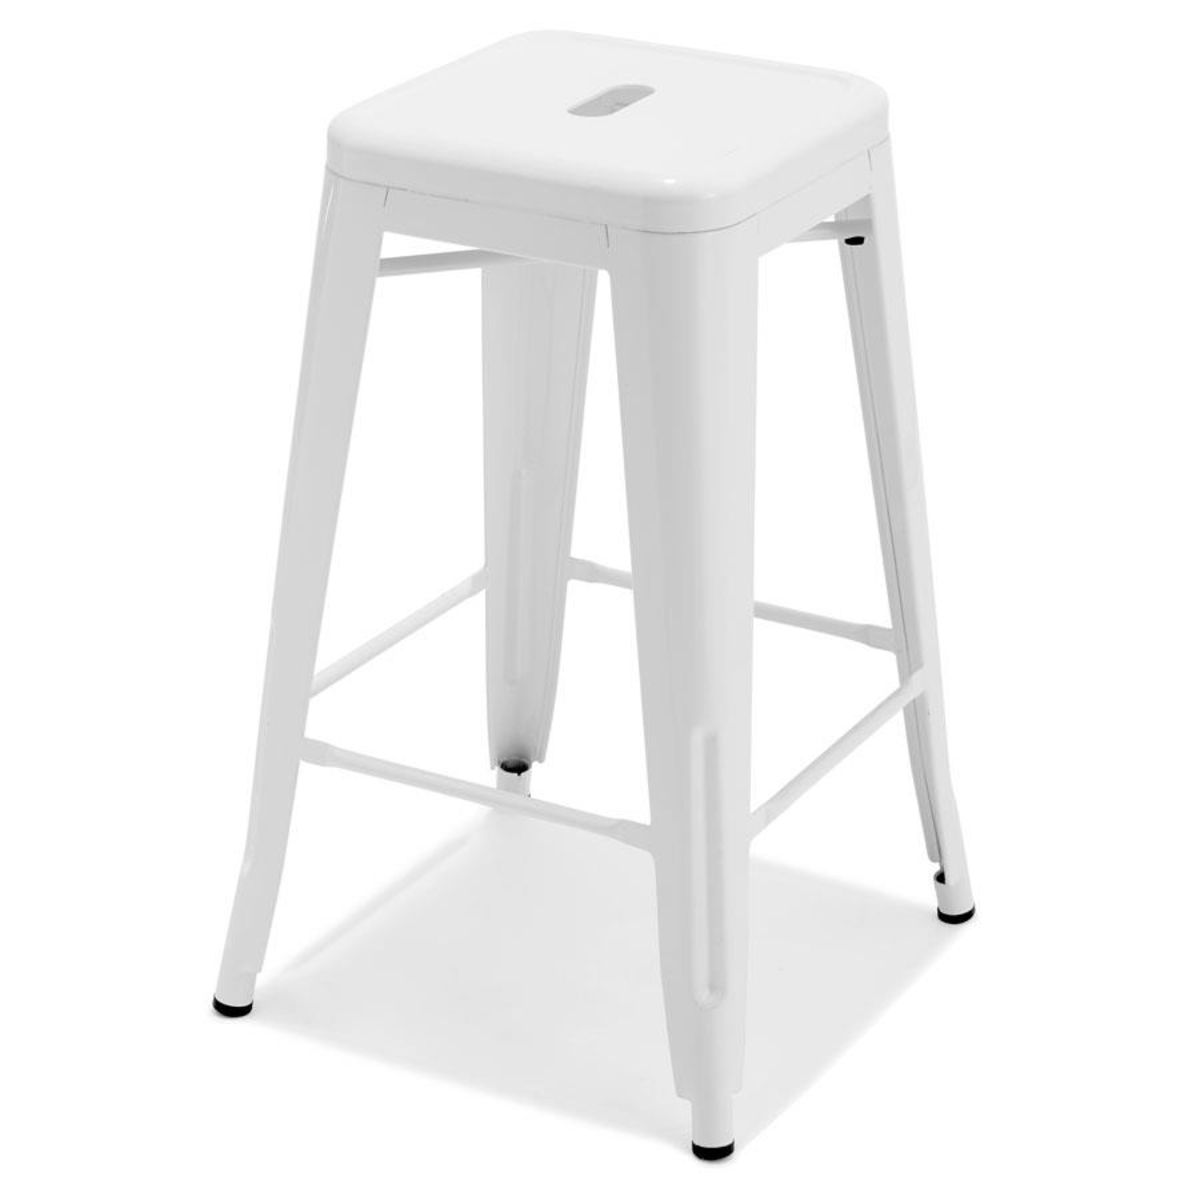 Cool 25 White Metal Bar Stool Kmart Metal Bar Stools White Caraccident5 Cool Chair Designs And Ideas Caraccident5Info